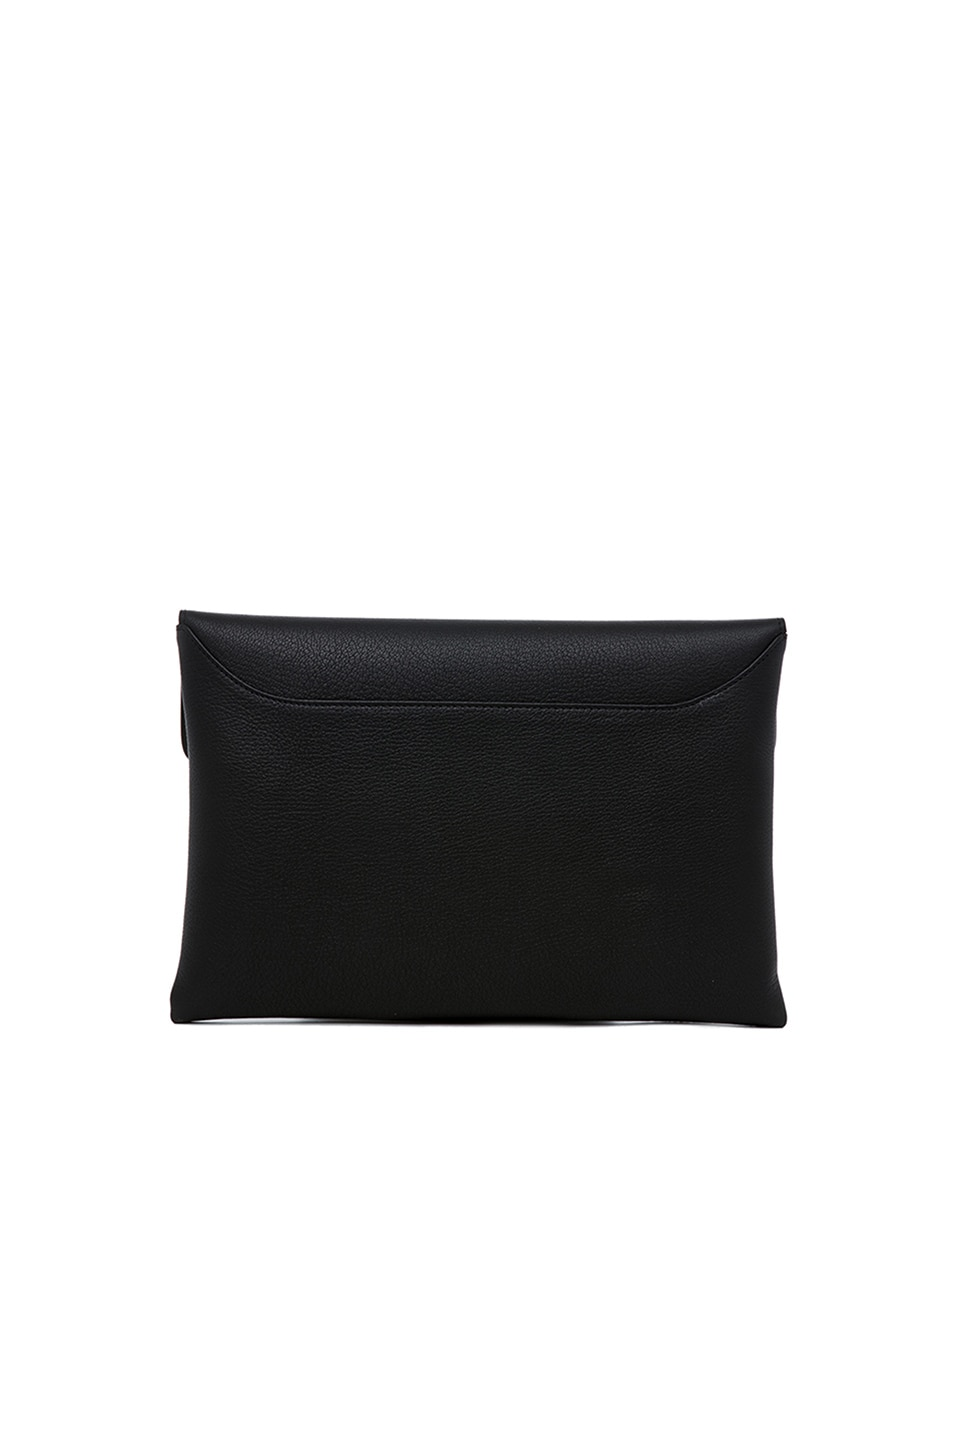 Image 3 of GIVENCHY Medium Antigona Envelope Clutch in Black